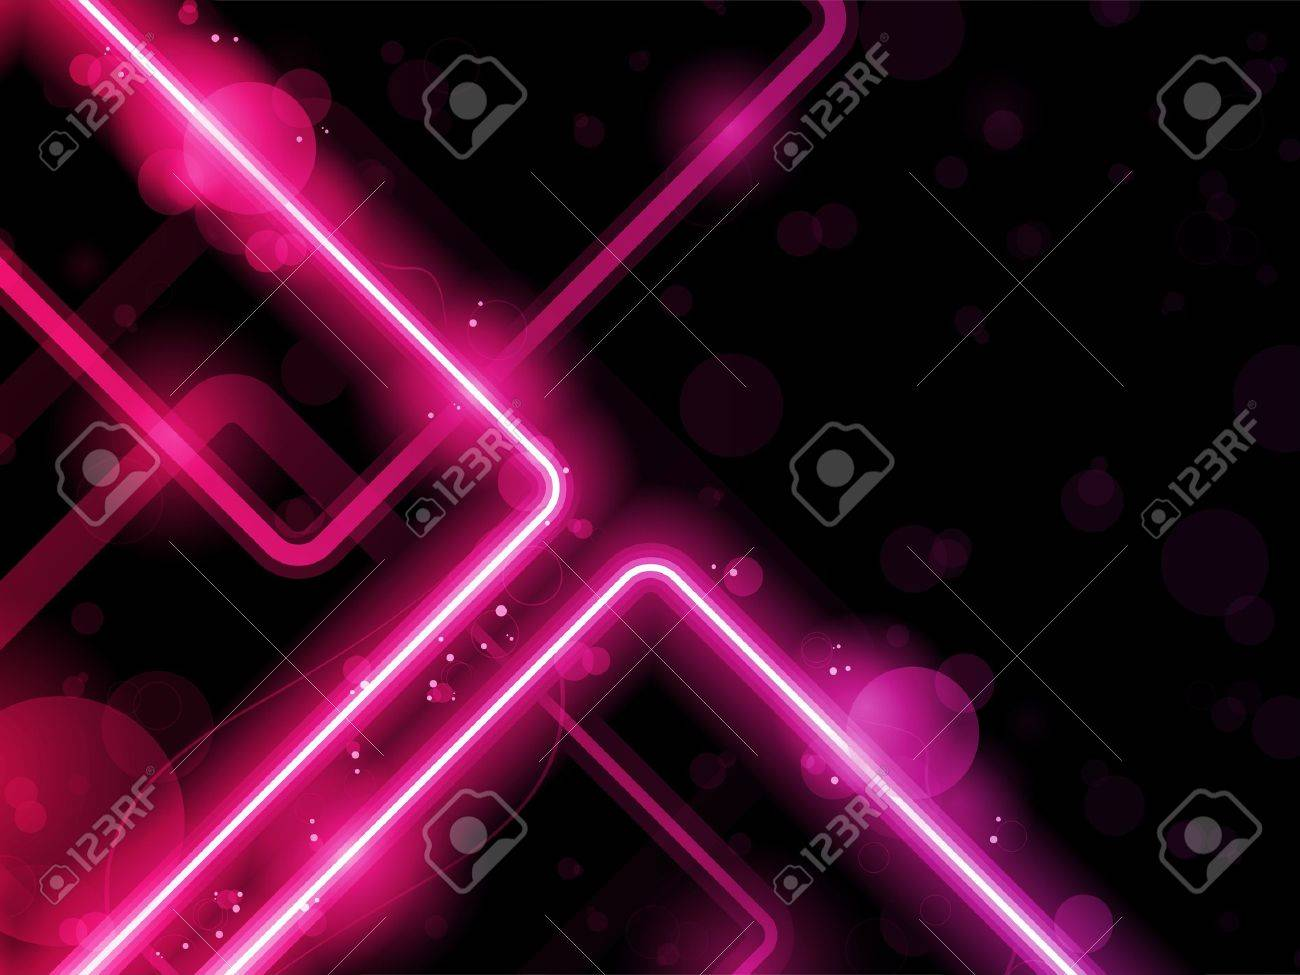 Red  Lines Background Neon Laser Stock Vector - 10843310